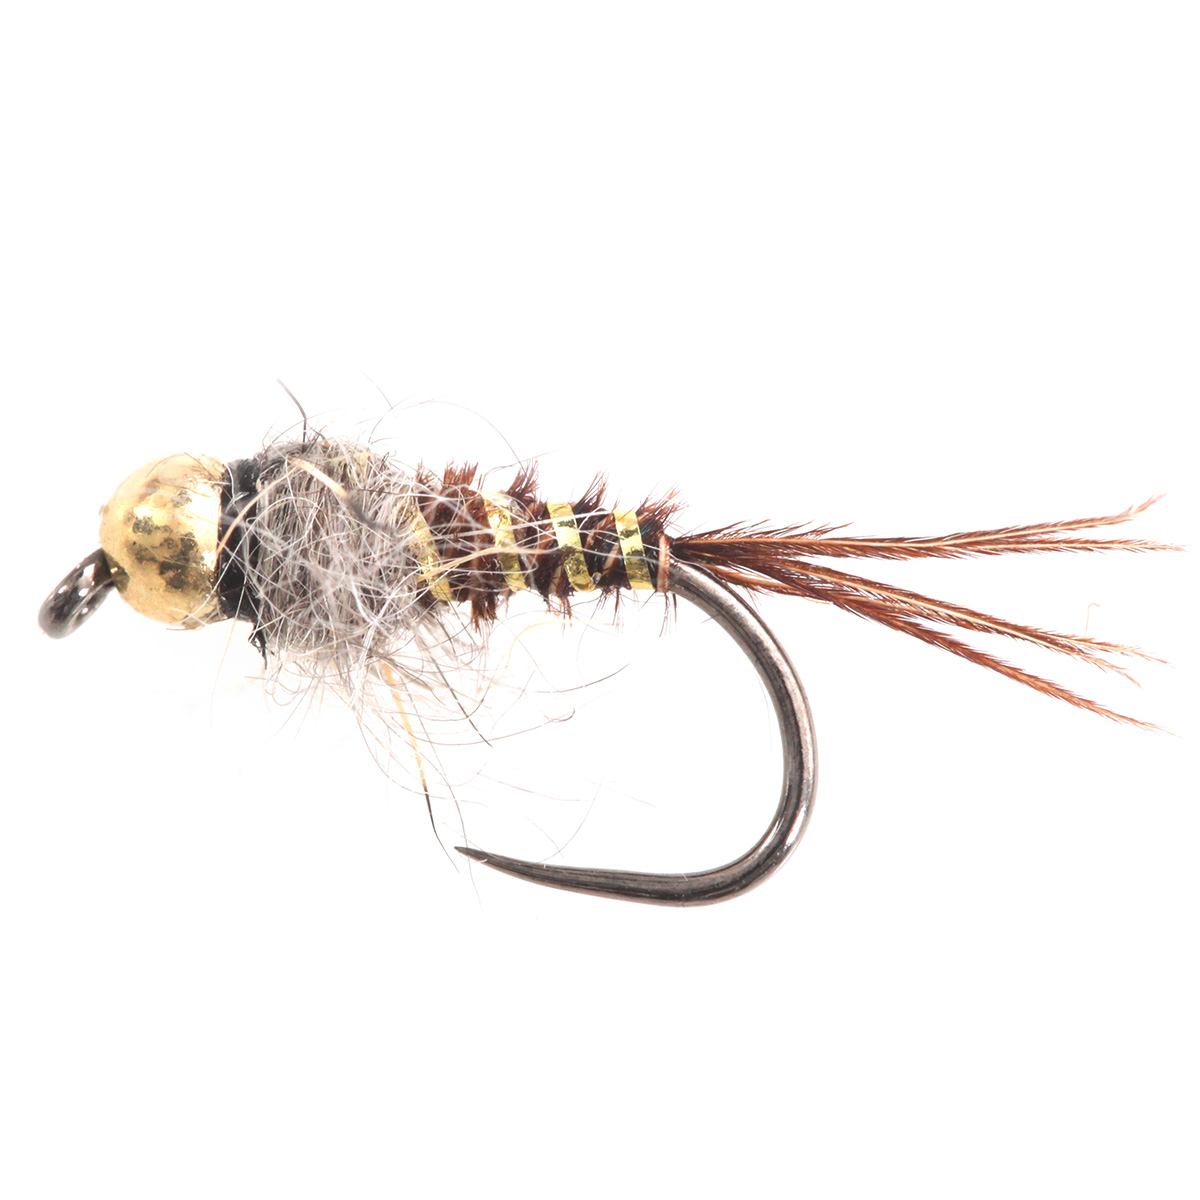 Tungsten BH Micro Pheasant Tail White/Natural